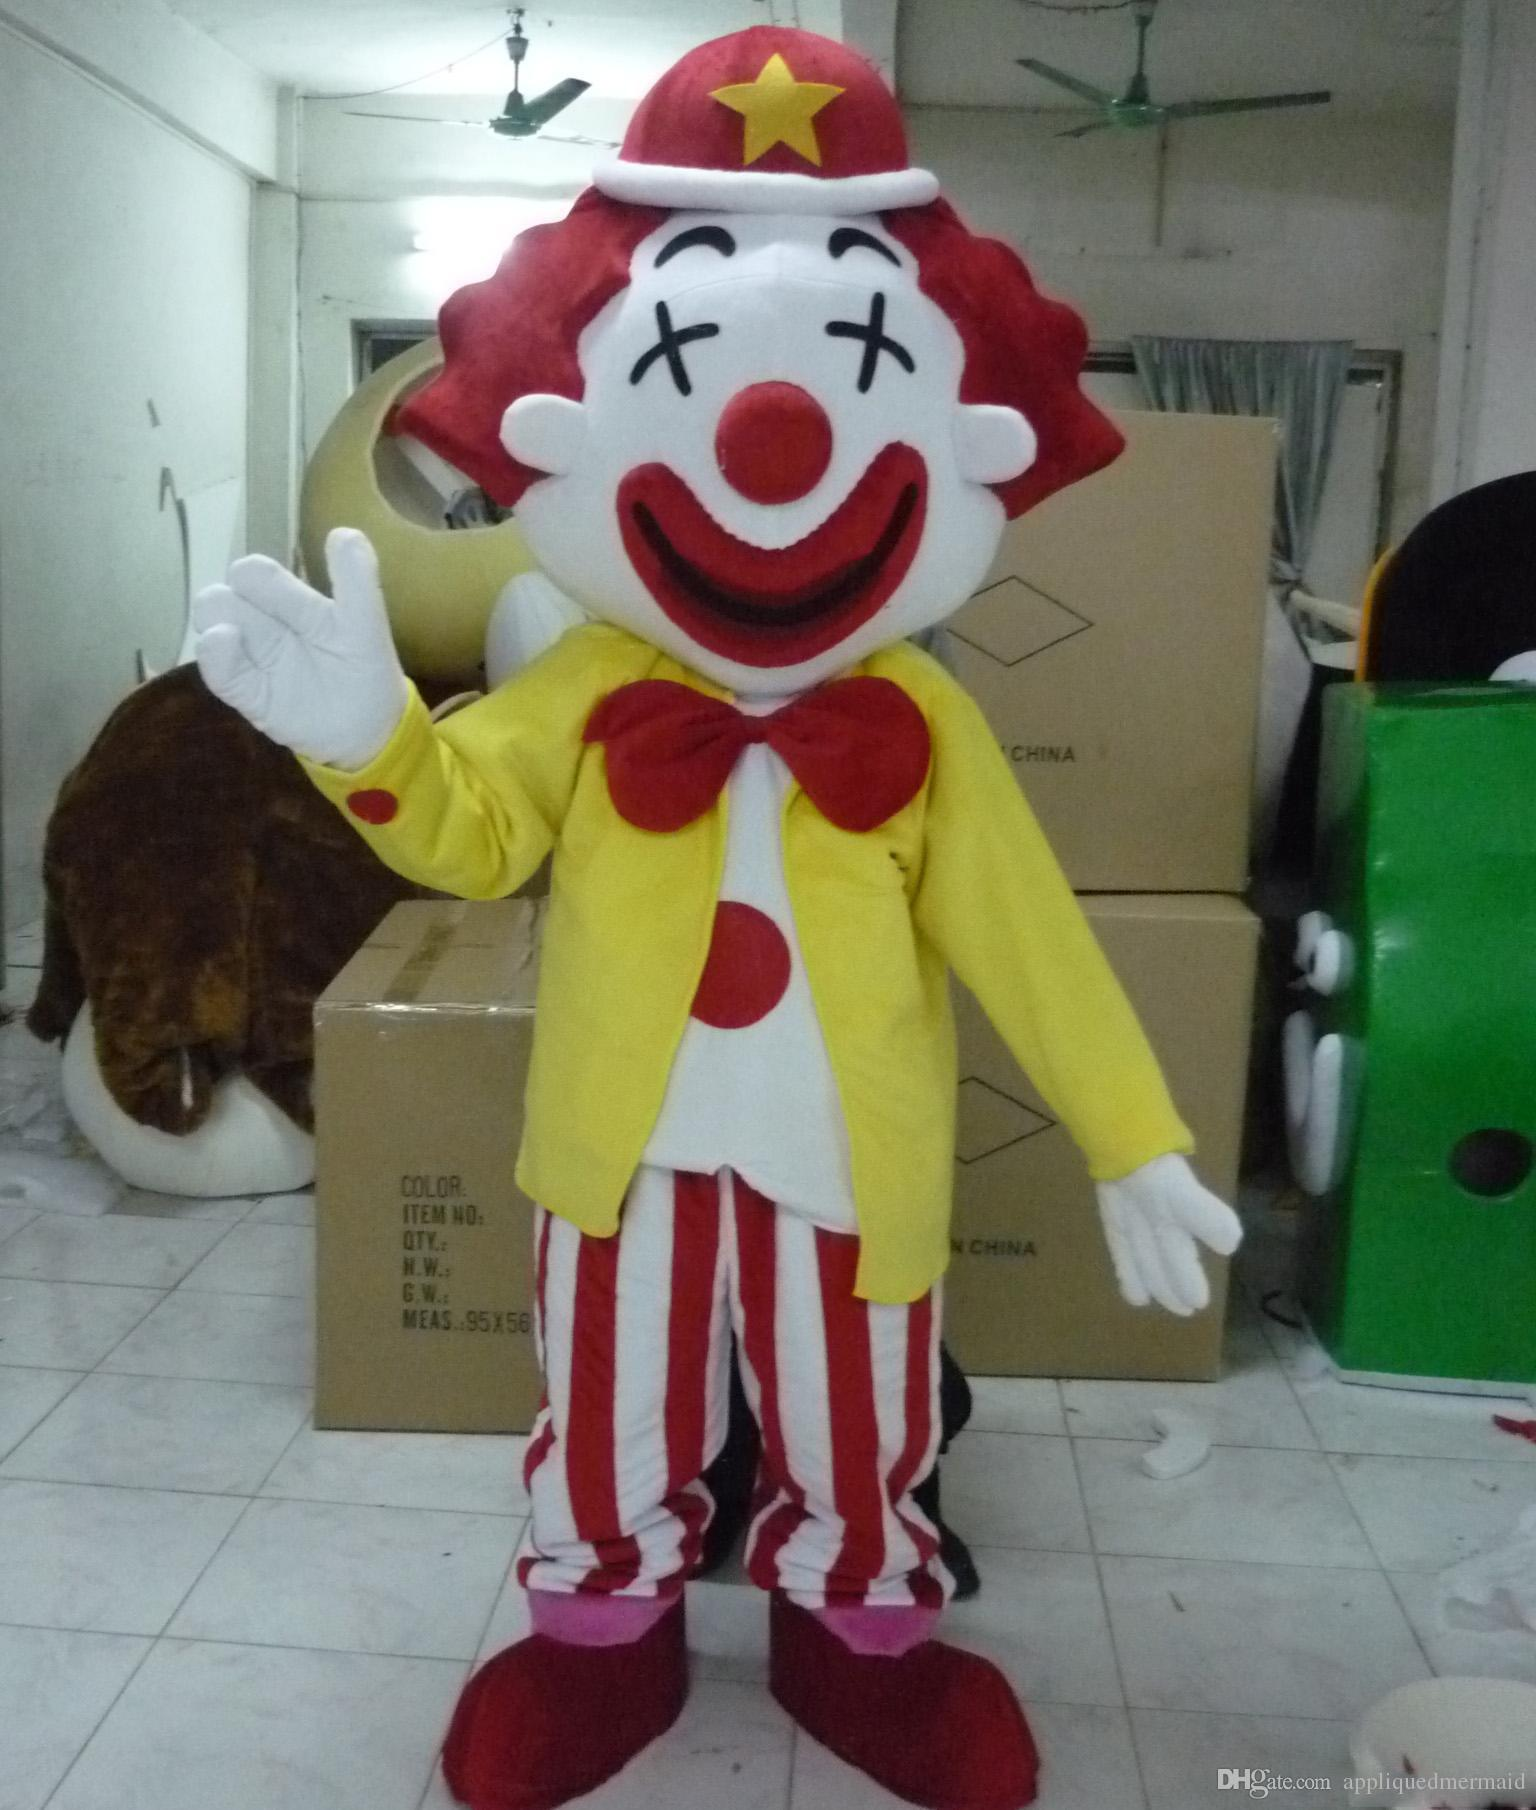 SX0723 100% real photos of big mouth clown mascot costume for adult to wear for sale